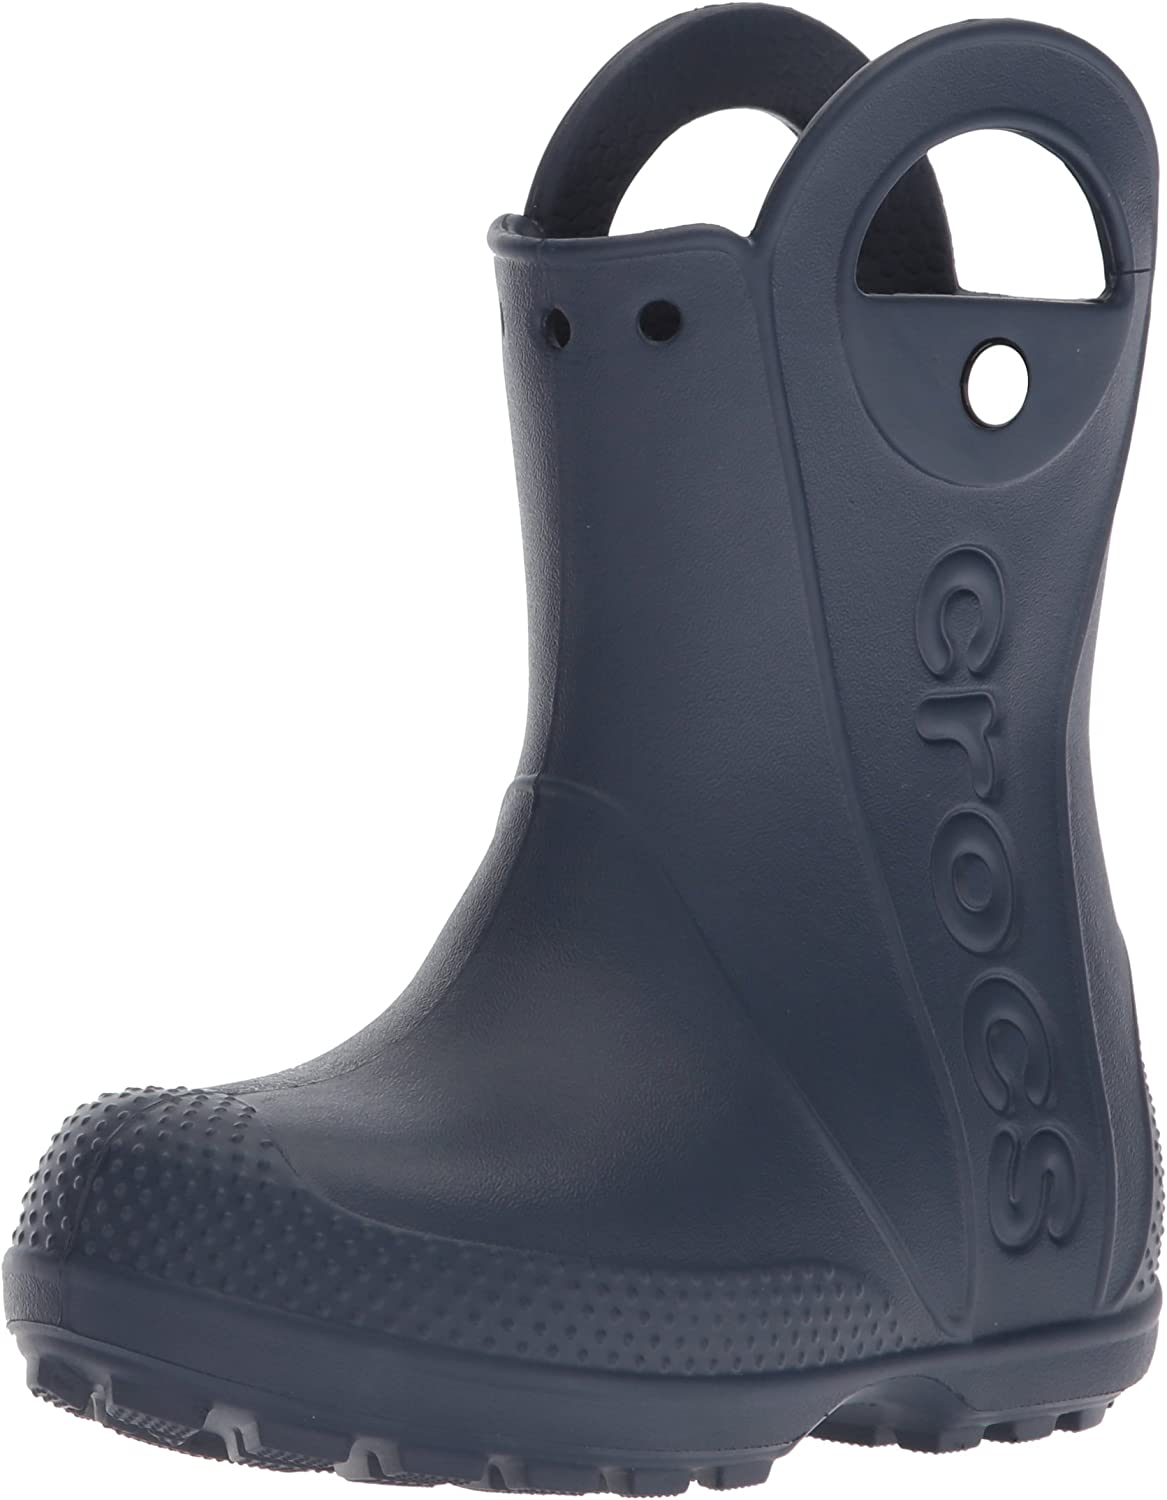 Crocs Kids' Handle It-Rain Boot